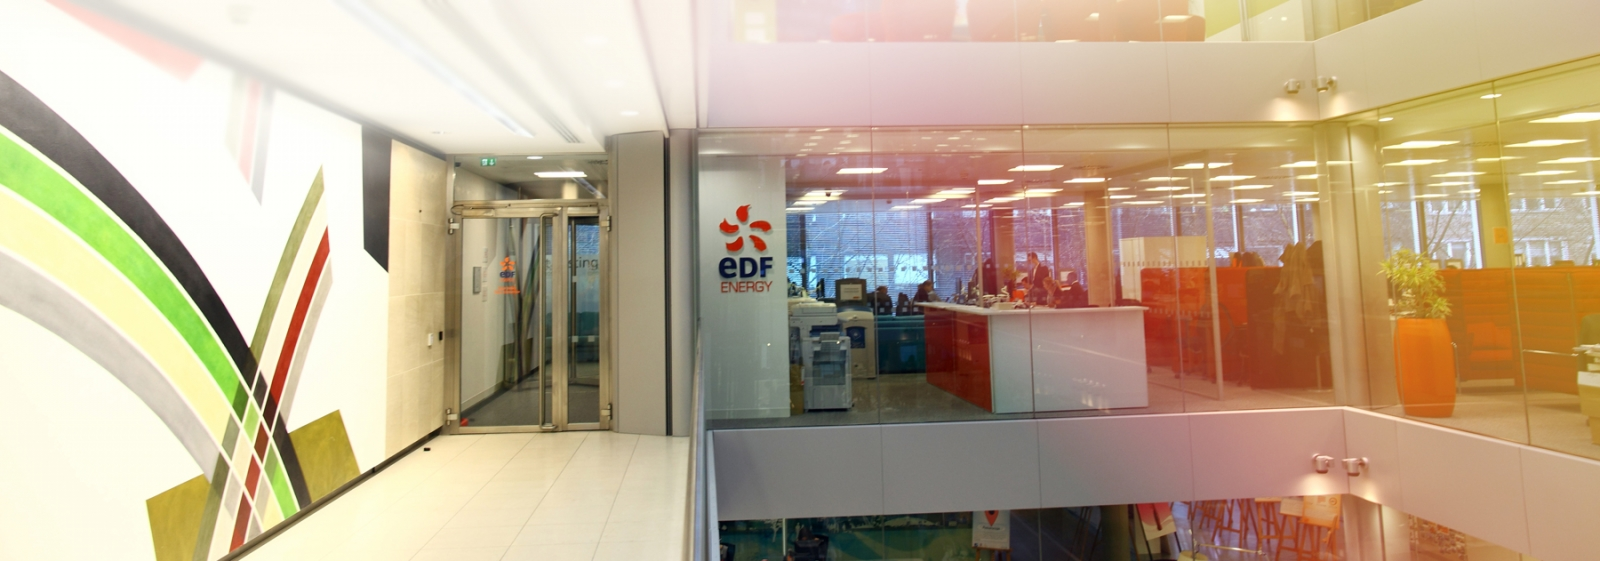 Inside an EDF Energy office